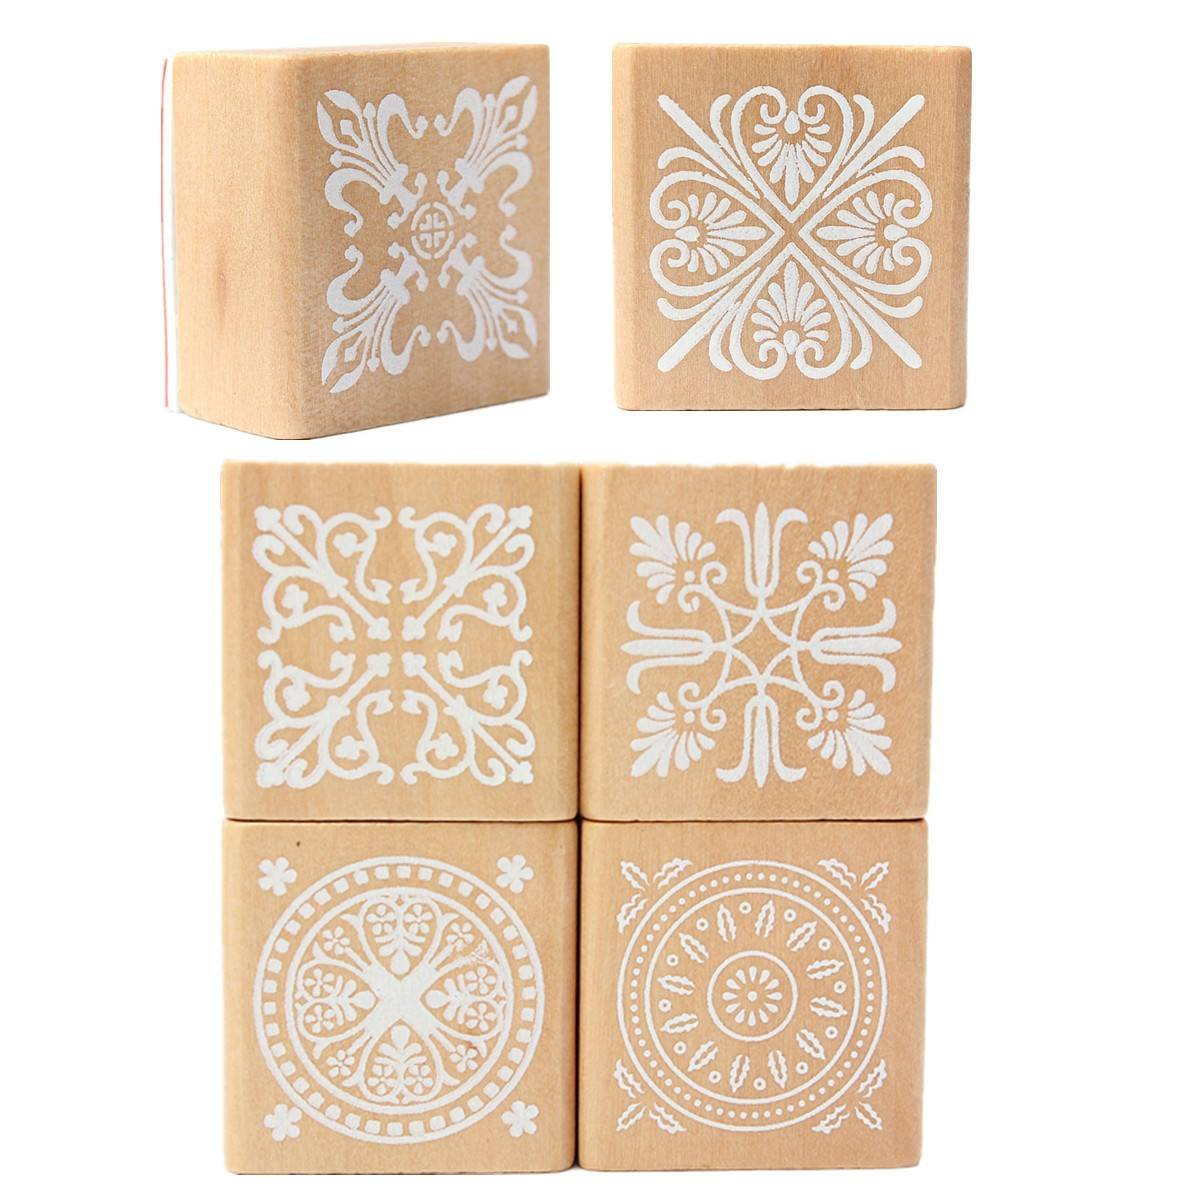 TFBC 6 Assorted Wooden Stamp Rubber Seal Square Handwriting DIY Craft Flower Lace запчасти для мебели tfbc t aliexpress